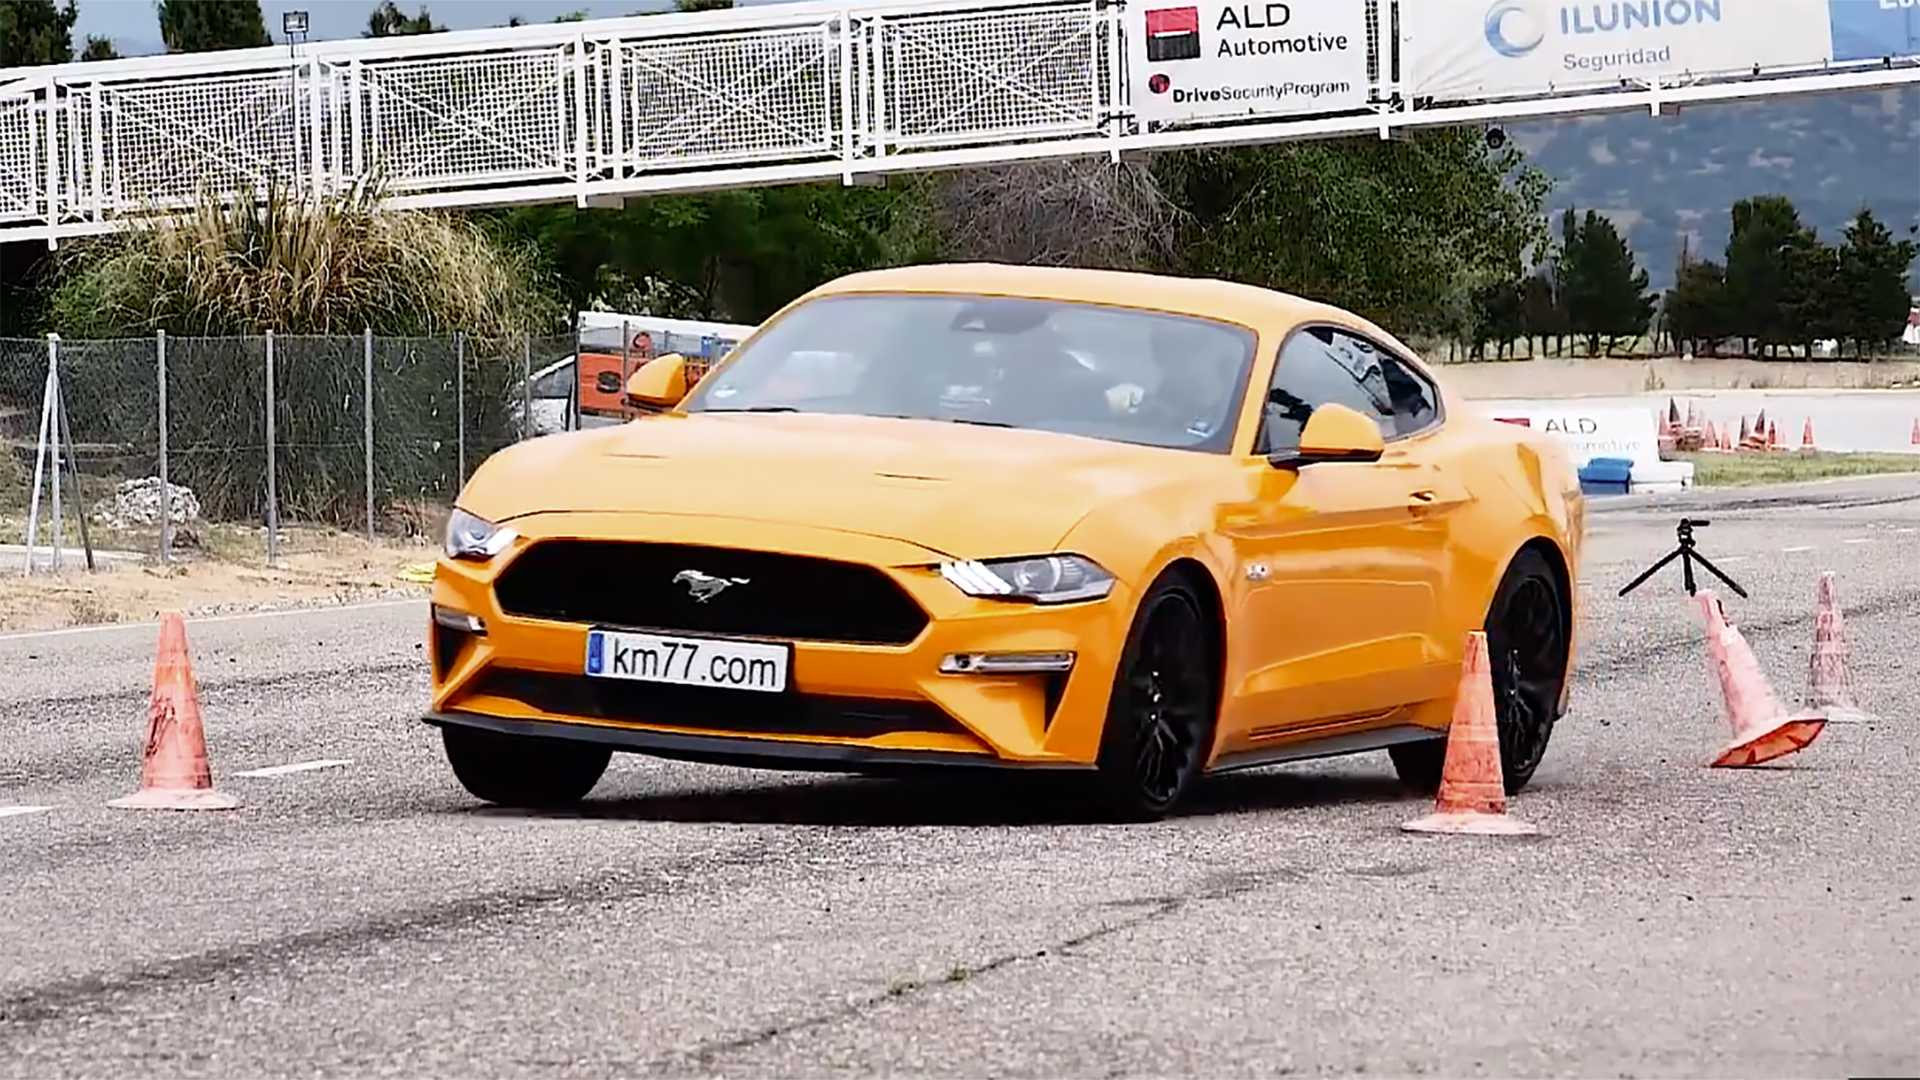 2018 ford mustang gt out handles the moose test